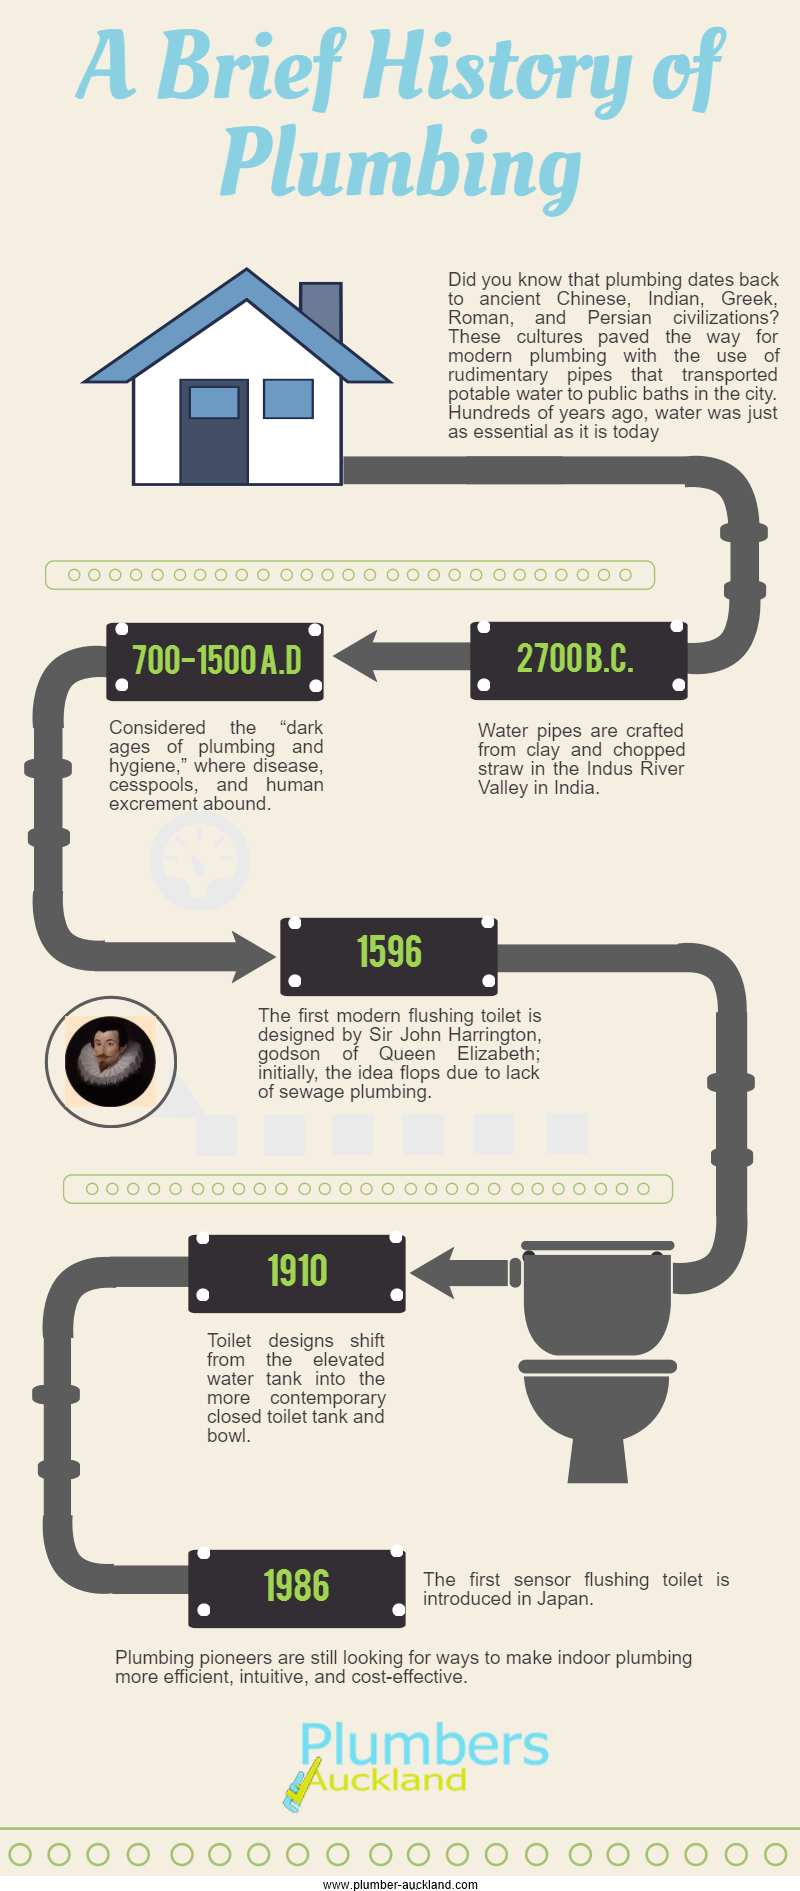 Plumbing through the Years